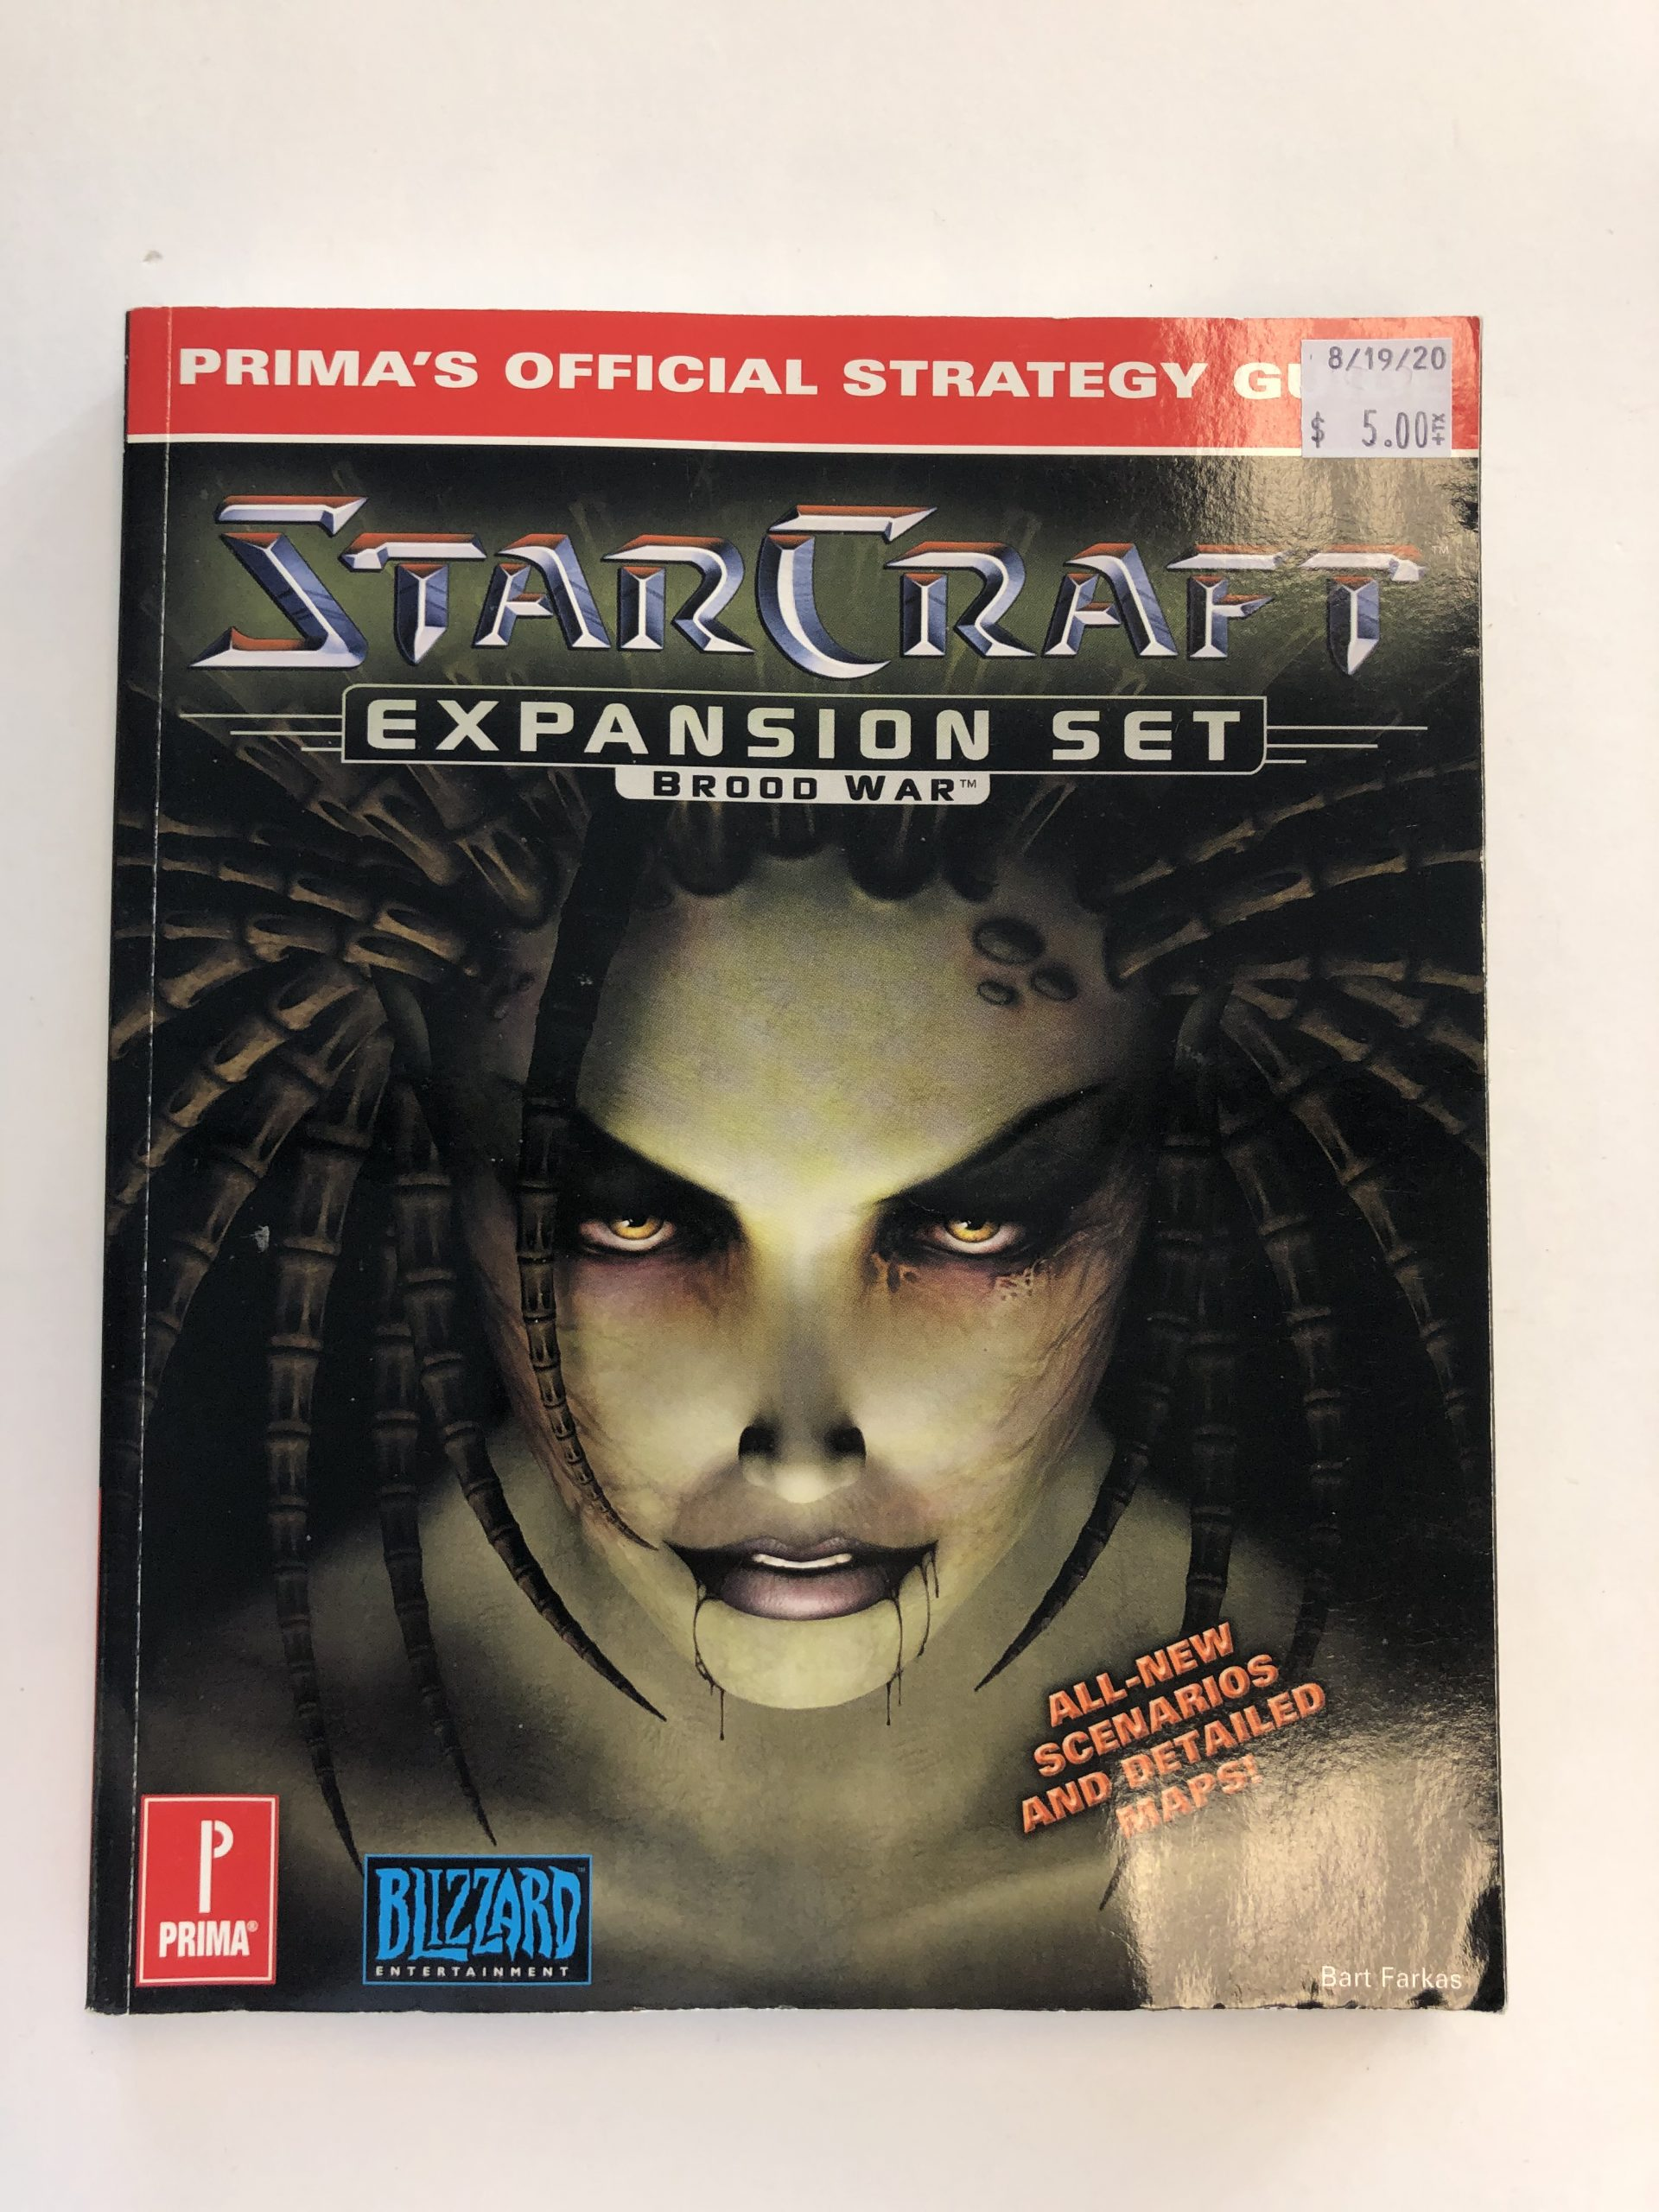 Star Craft Expansion Set Guide Book